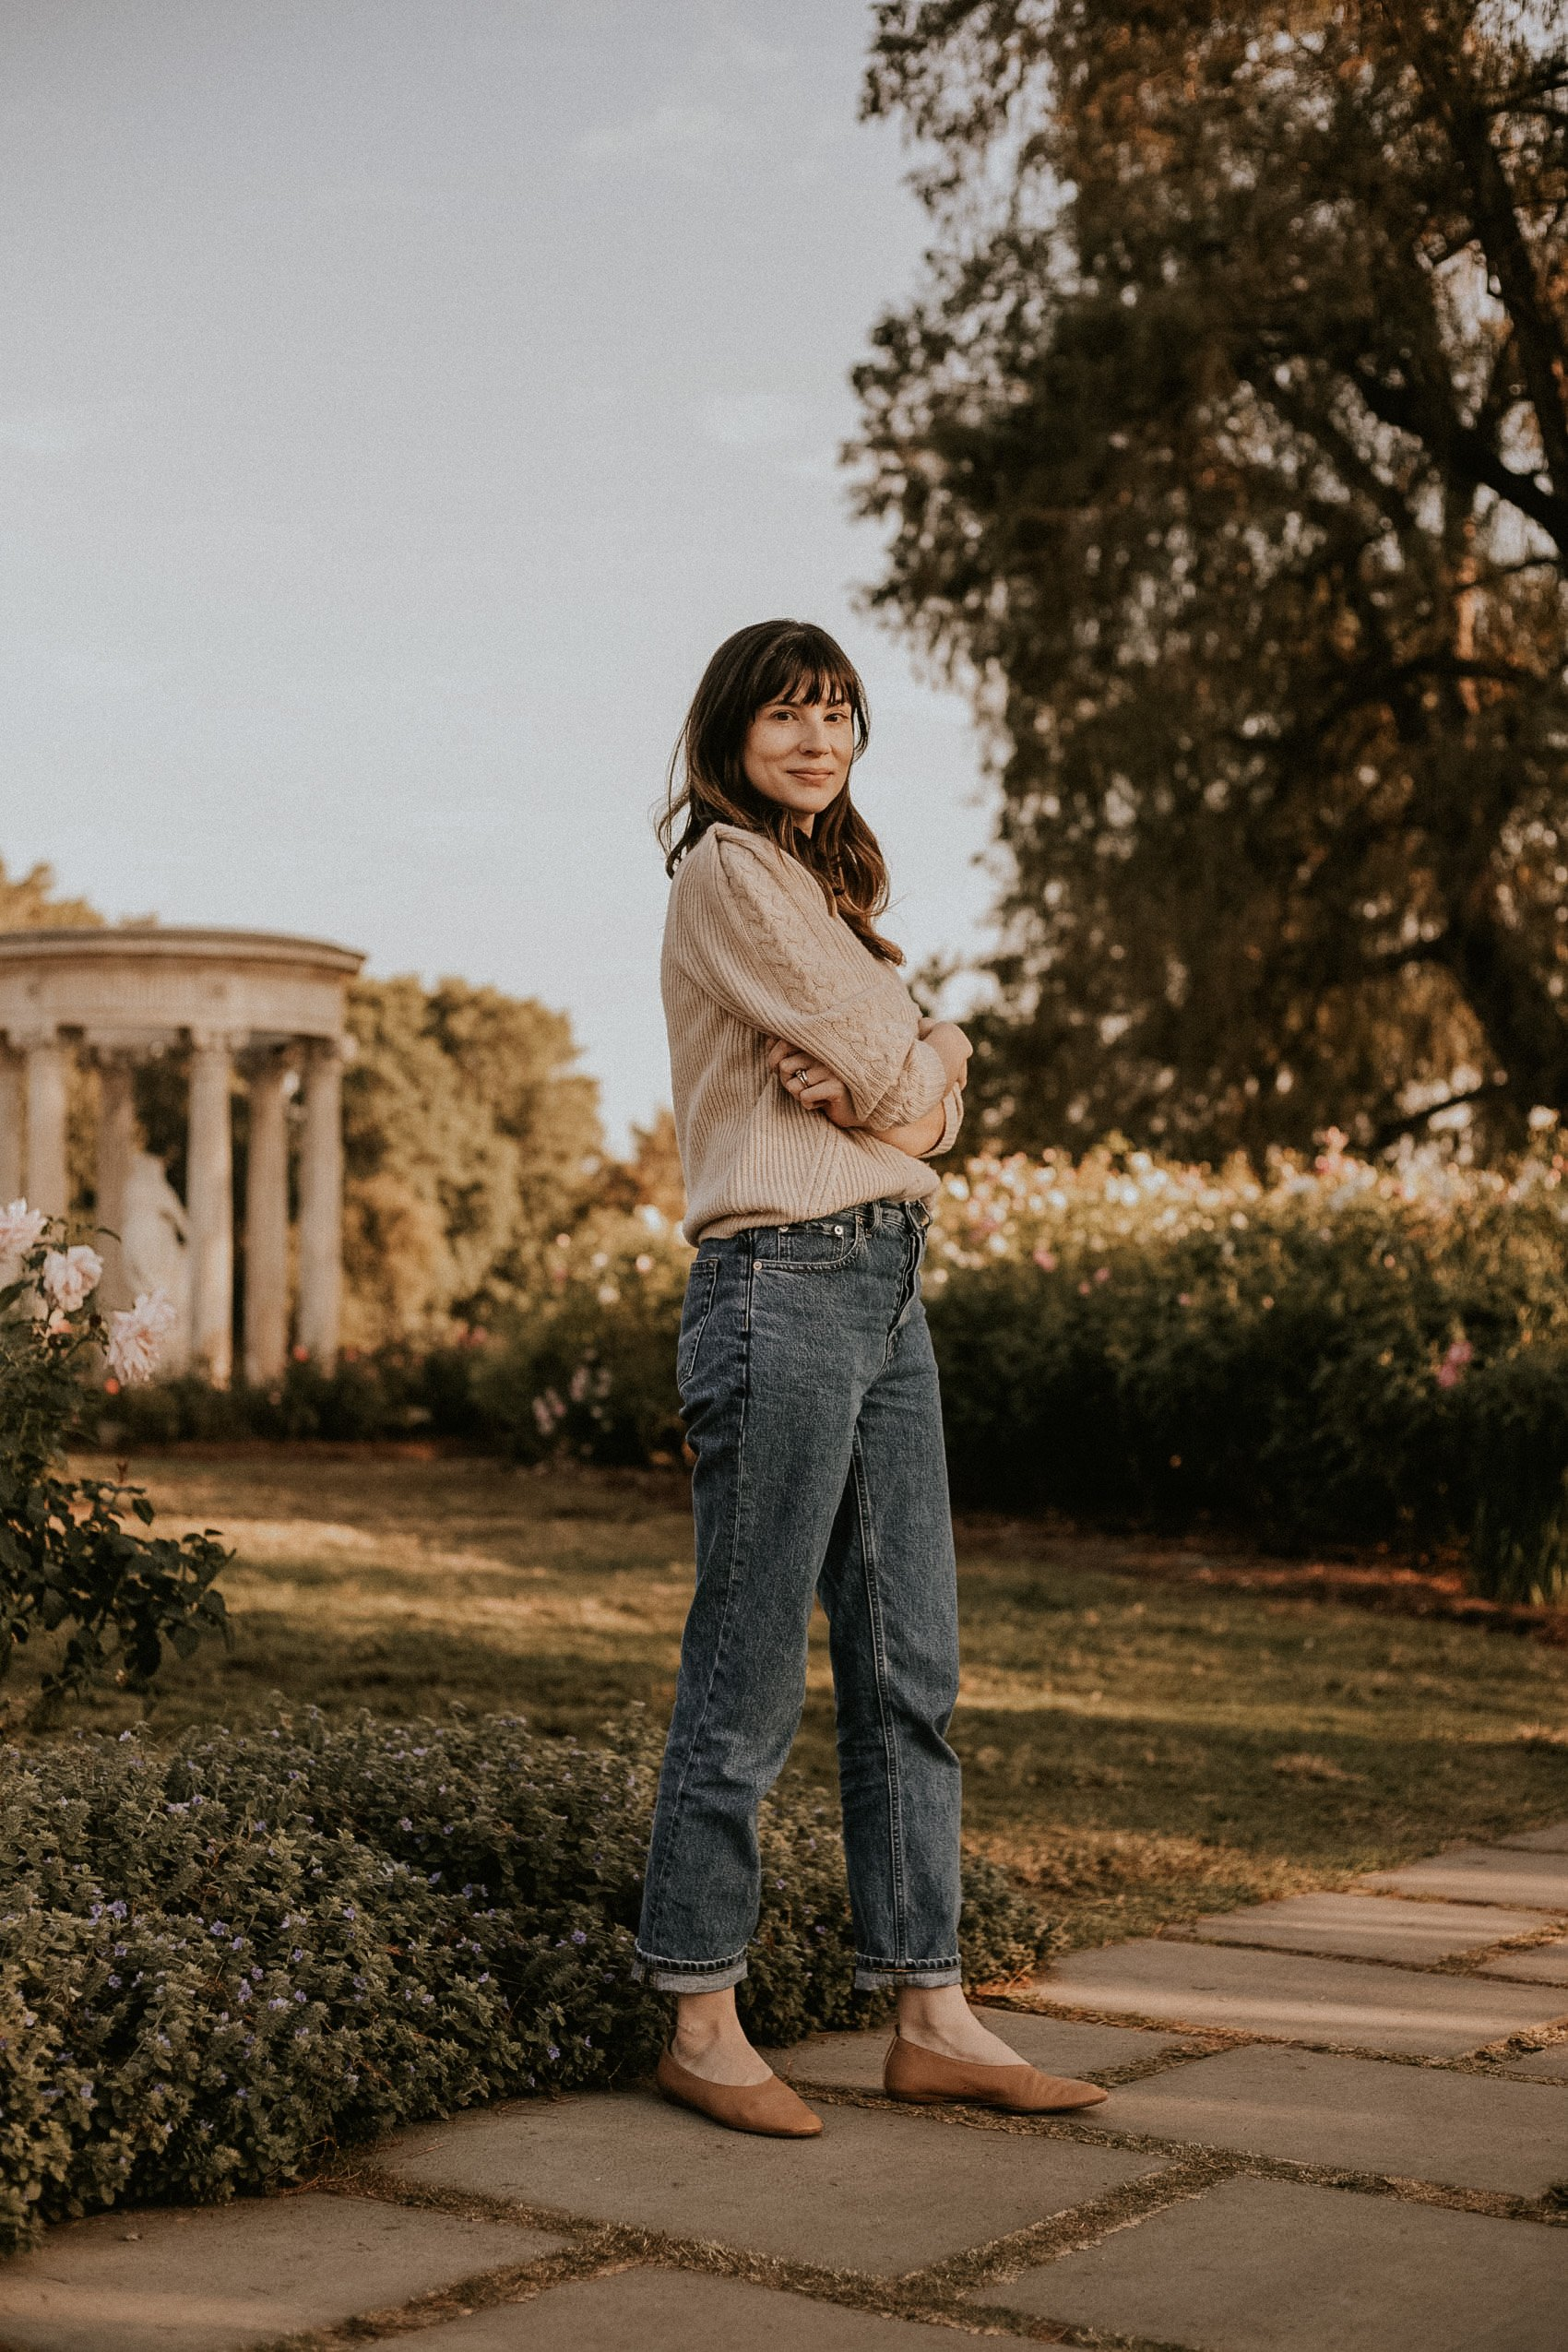 Ethical Fashion Brands Naadam and Everlane on Fashion Blogger Jeans and a Teacup at the Huntington Library